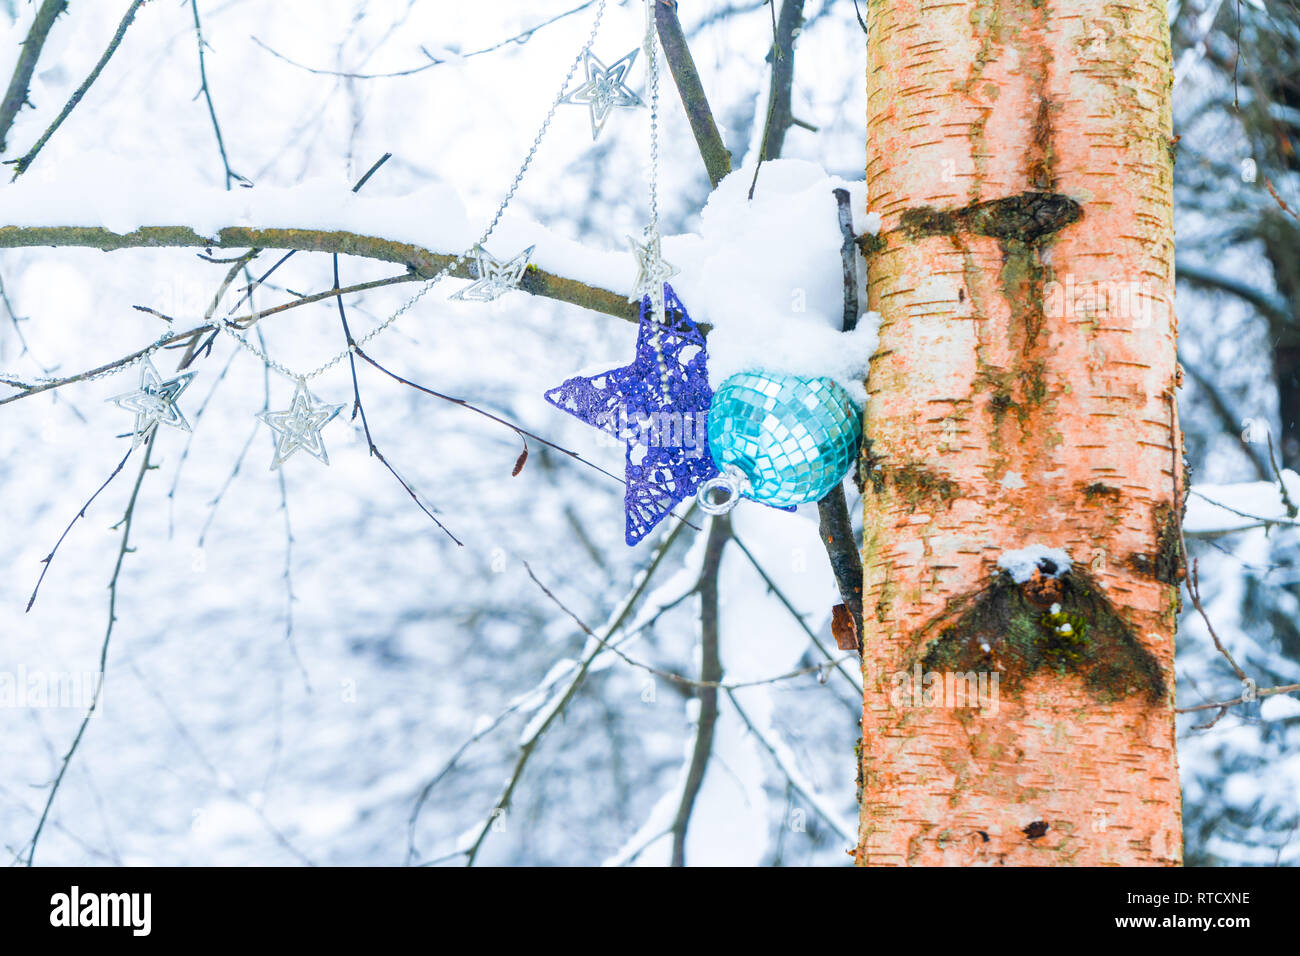 Christmas ornaments hanging on a tree in a snowy forest after a snow storm, depicting, winter time, cold weather, Christmas & holiday season. Stock Photo